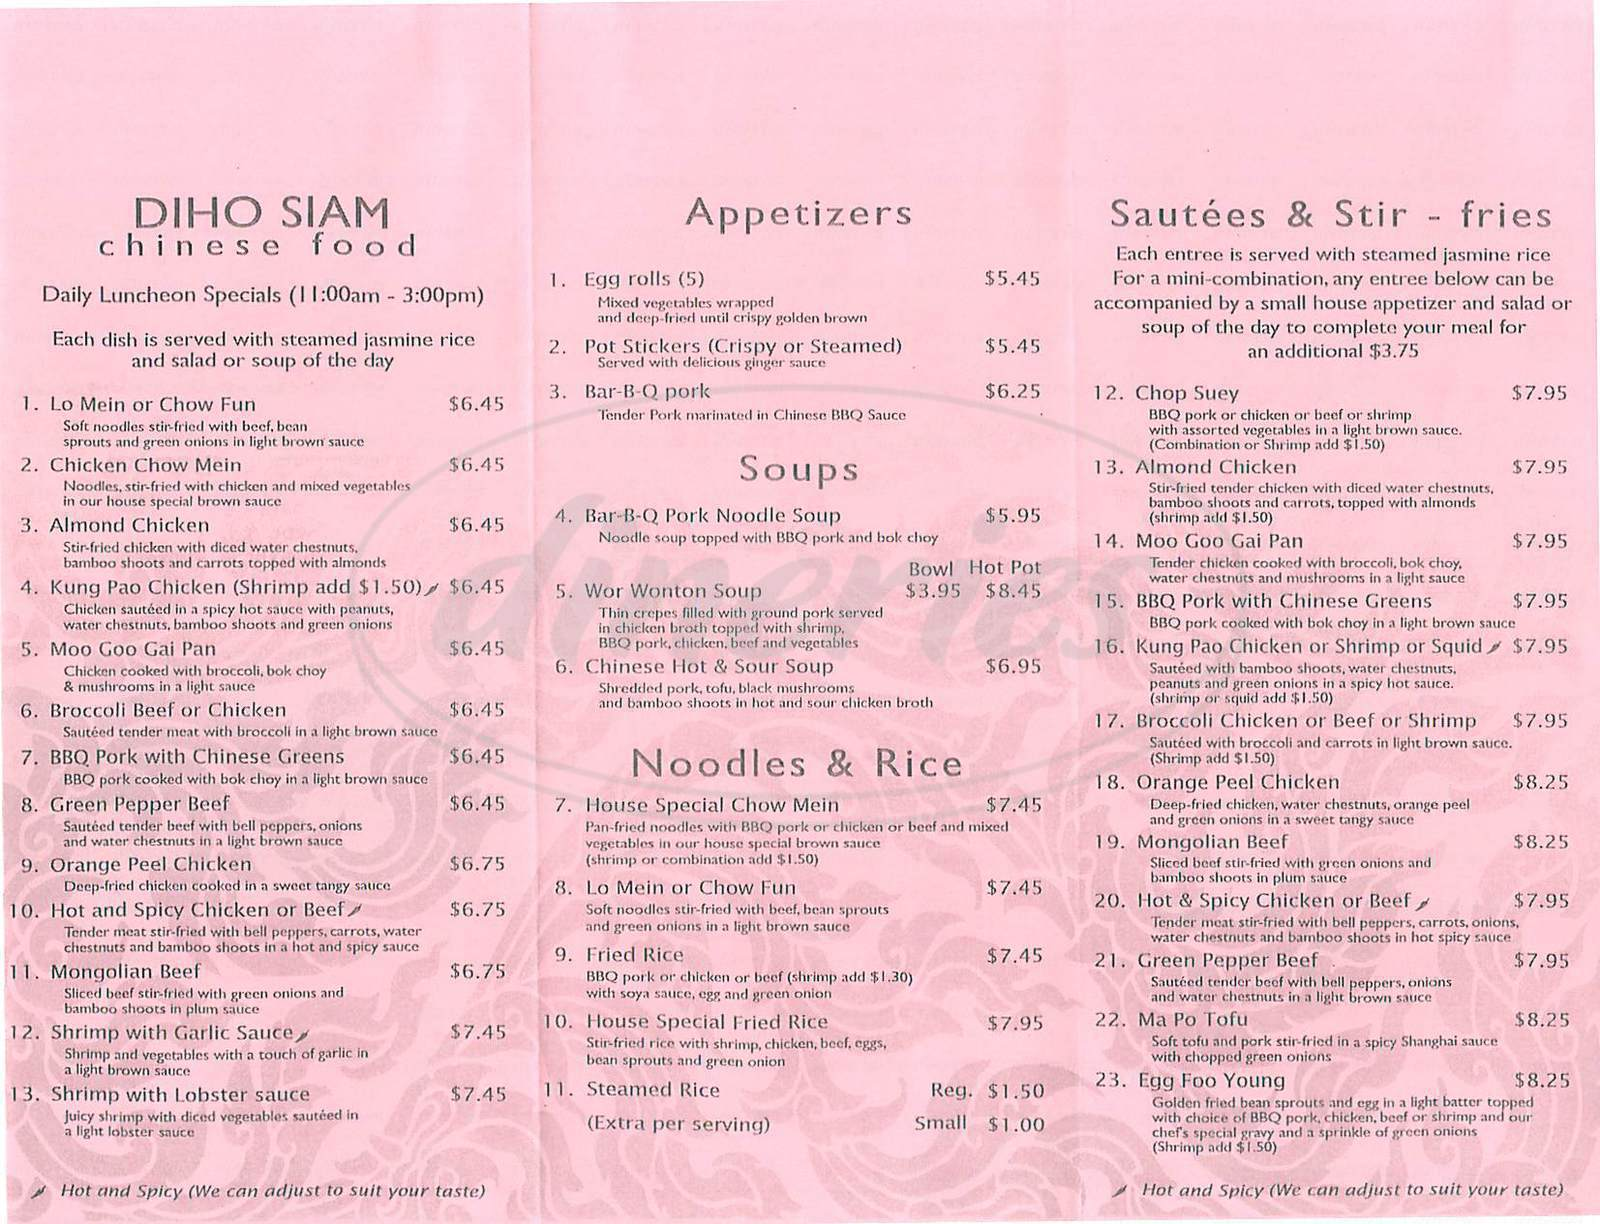 menu for Diho Siam